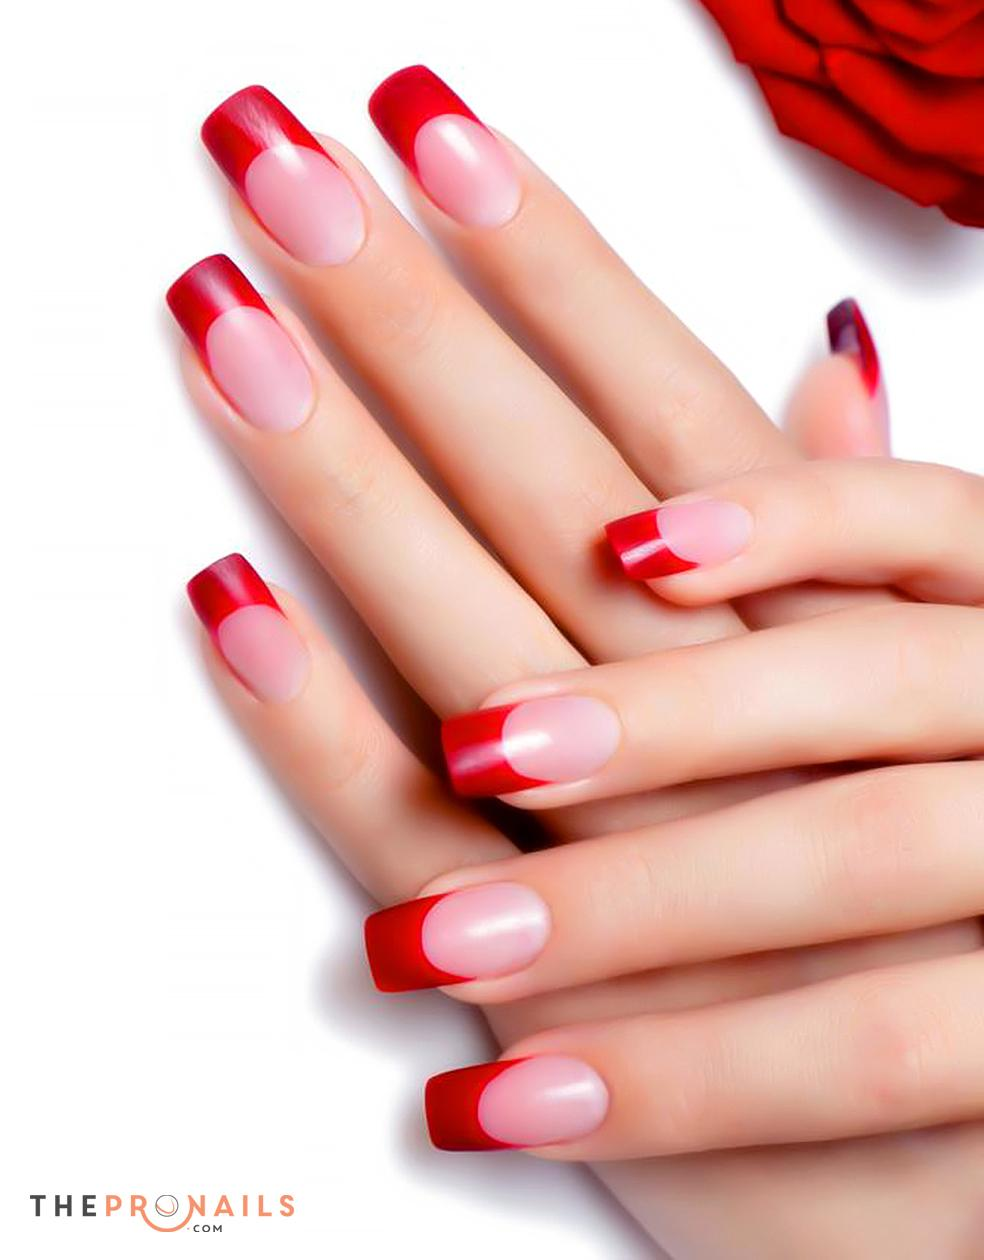 Classic Manicure With Shellac Gel Polish That Strengthens The Natural Nail And Lasts Up To Two Weeks No Drying Required